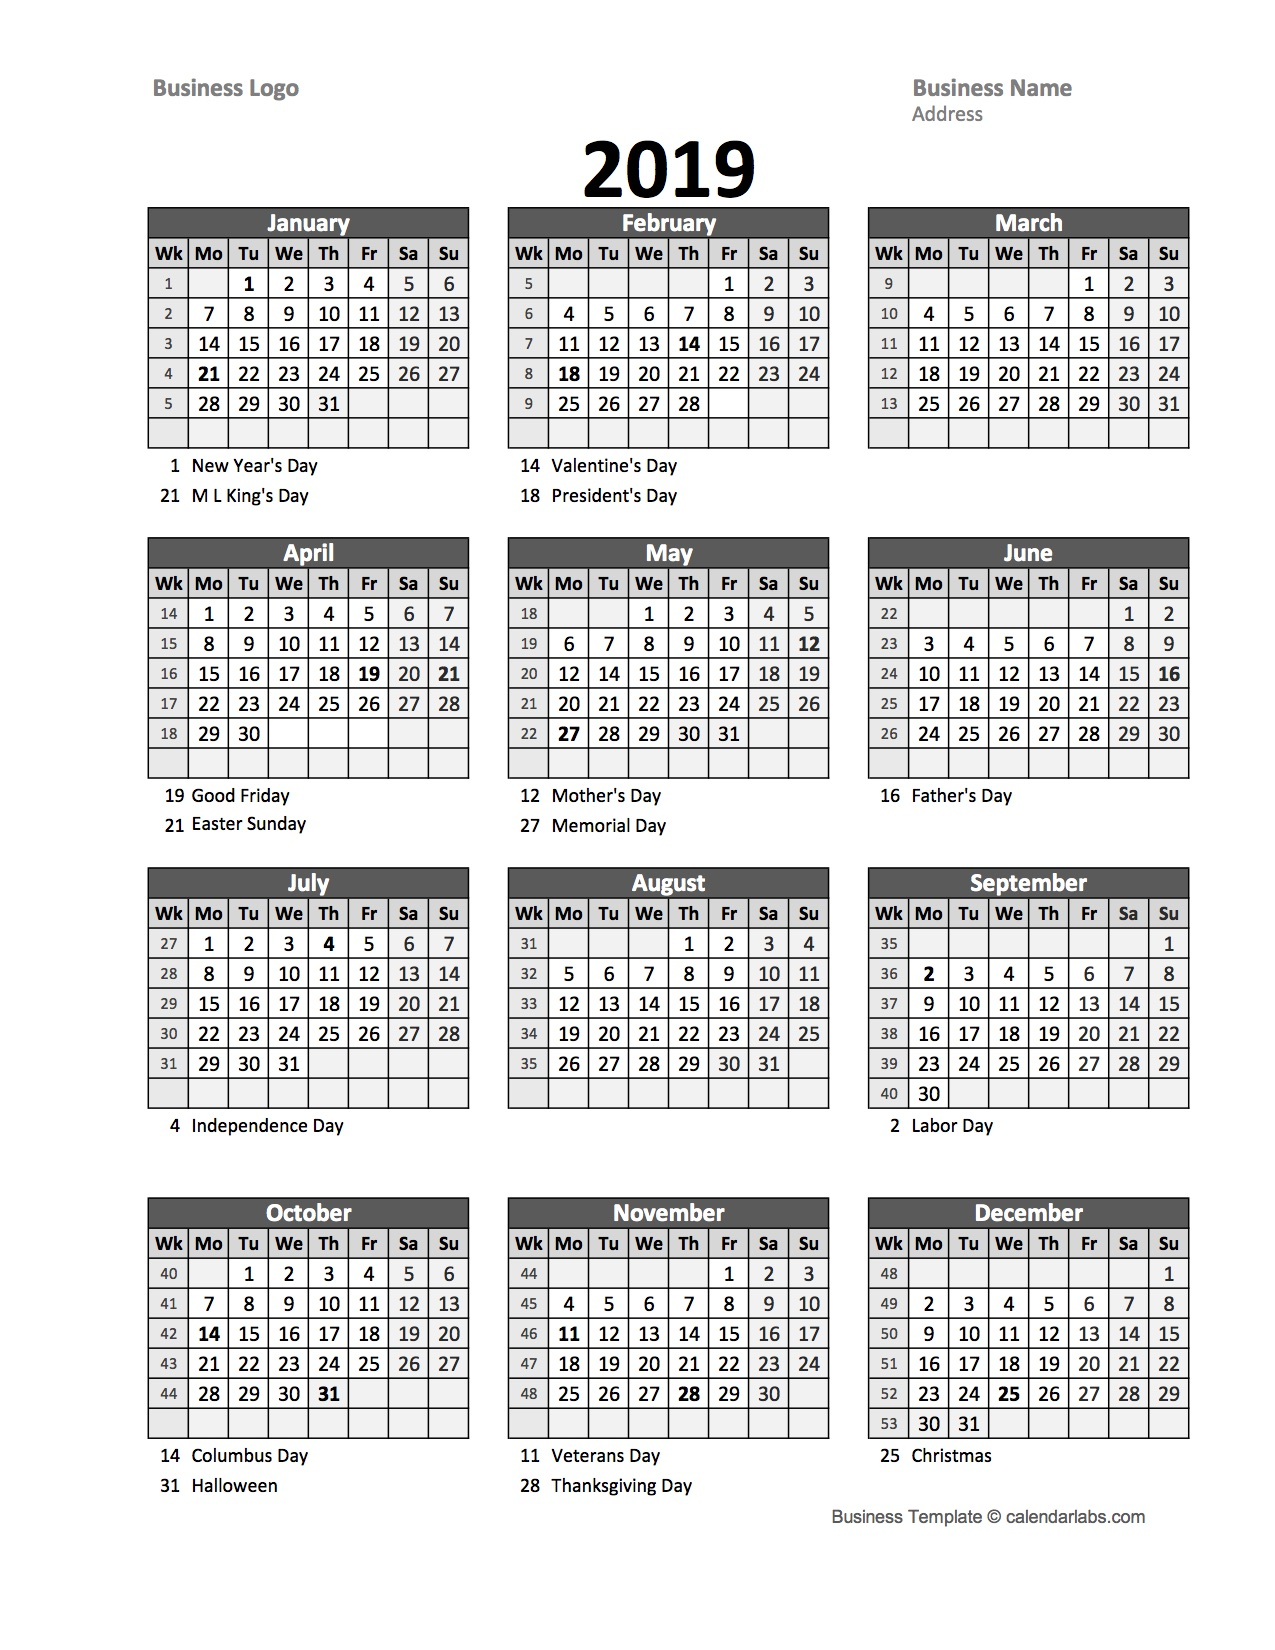 2019 yearly business calendar with week number